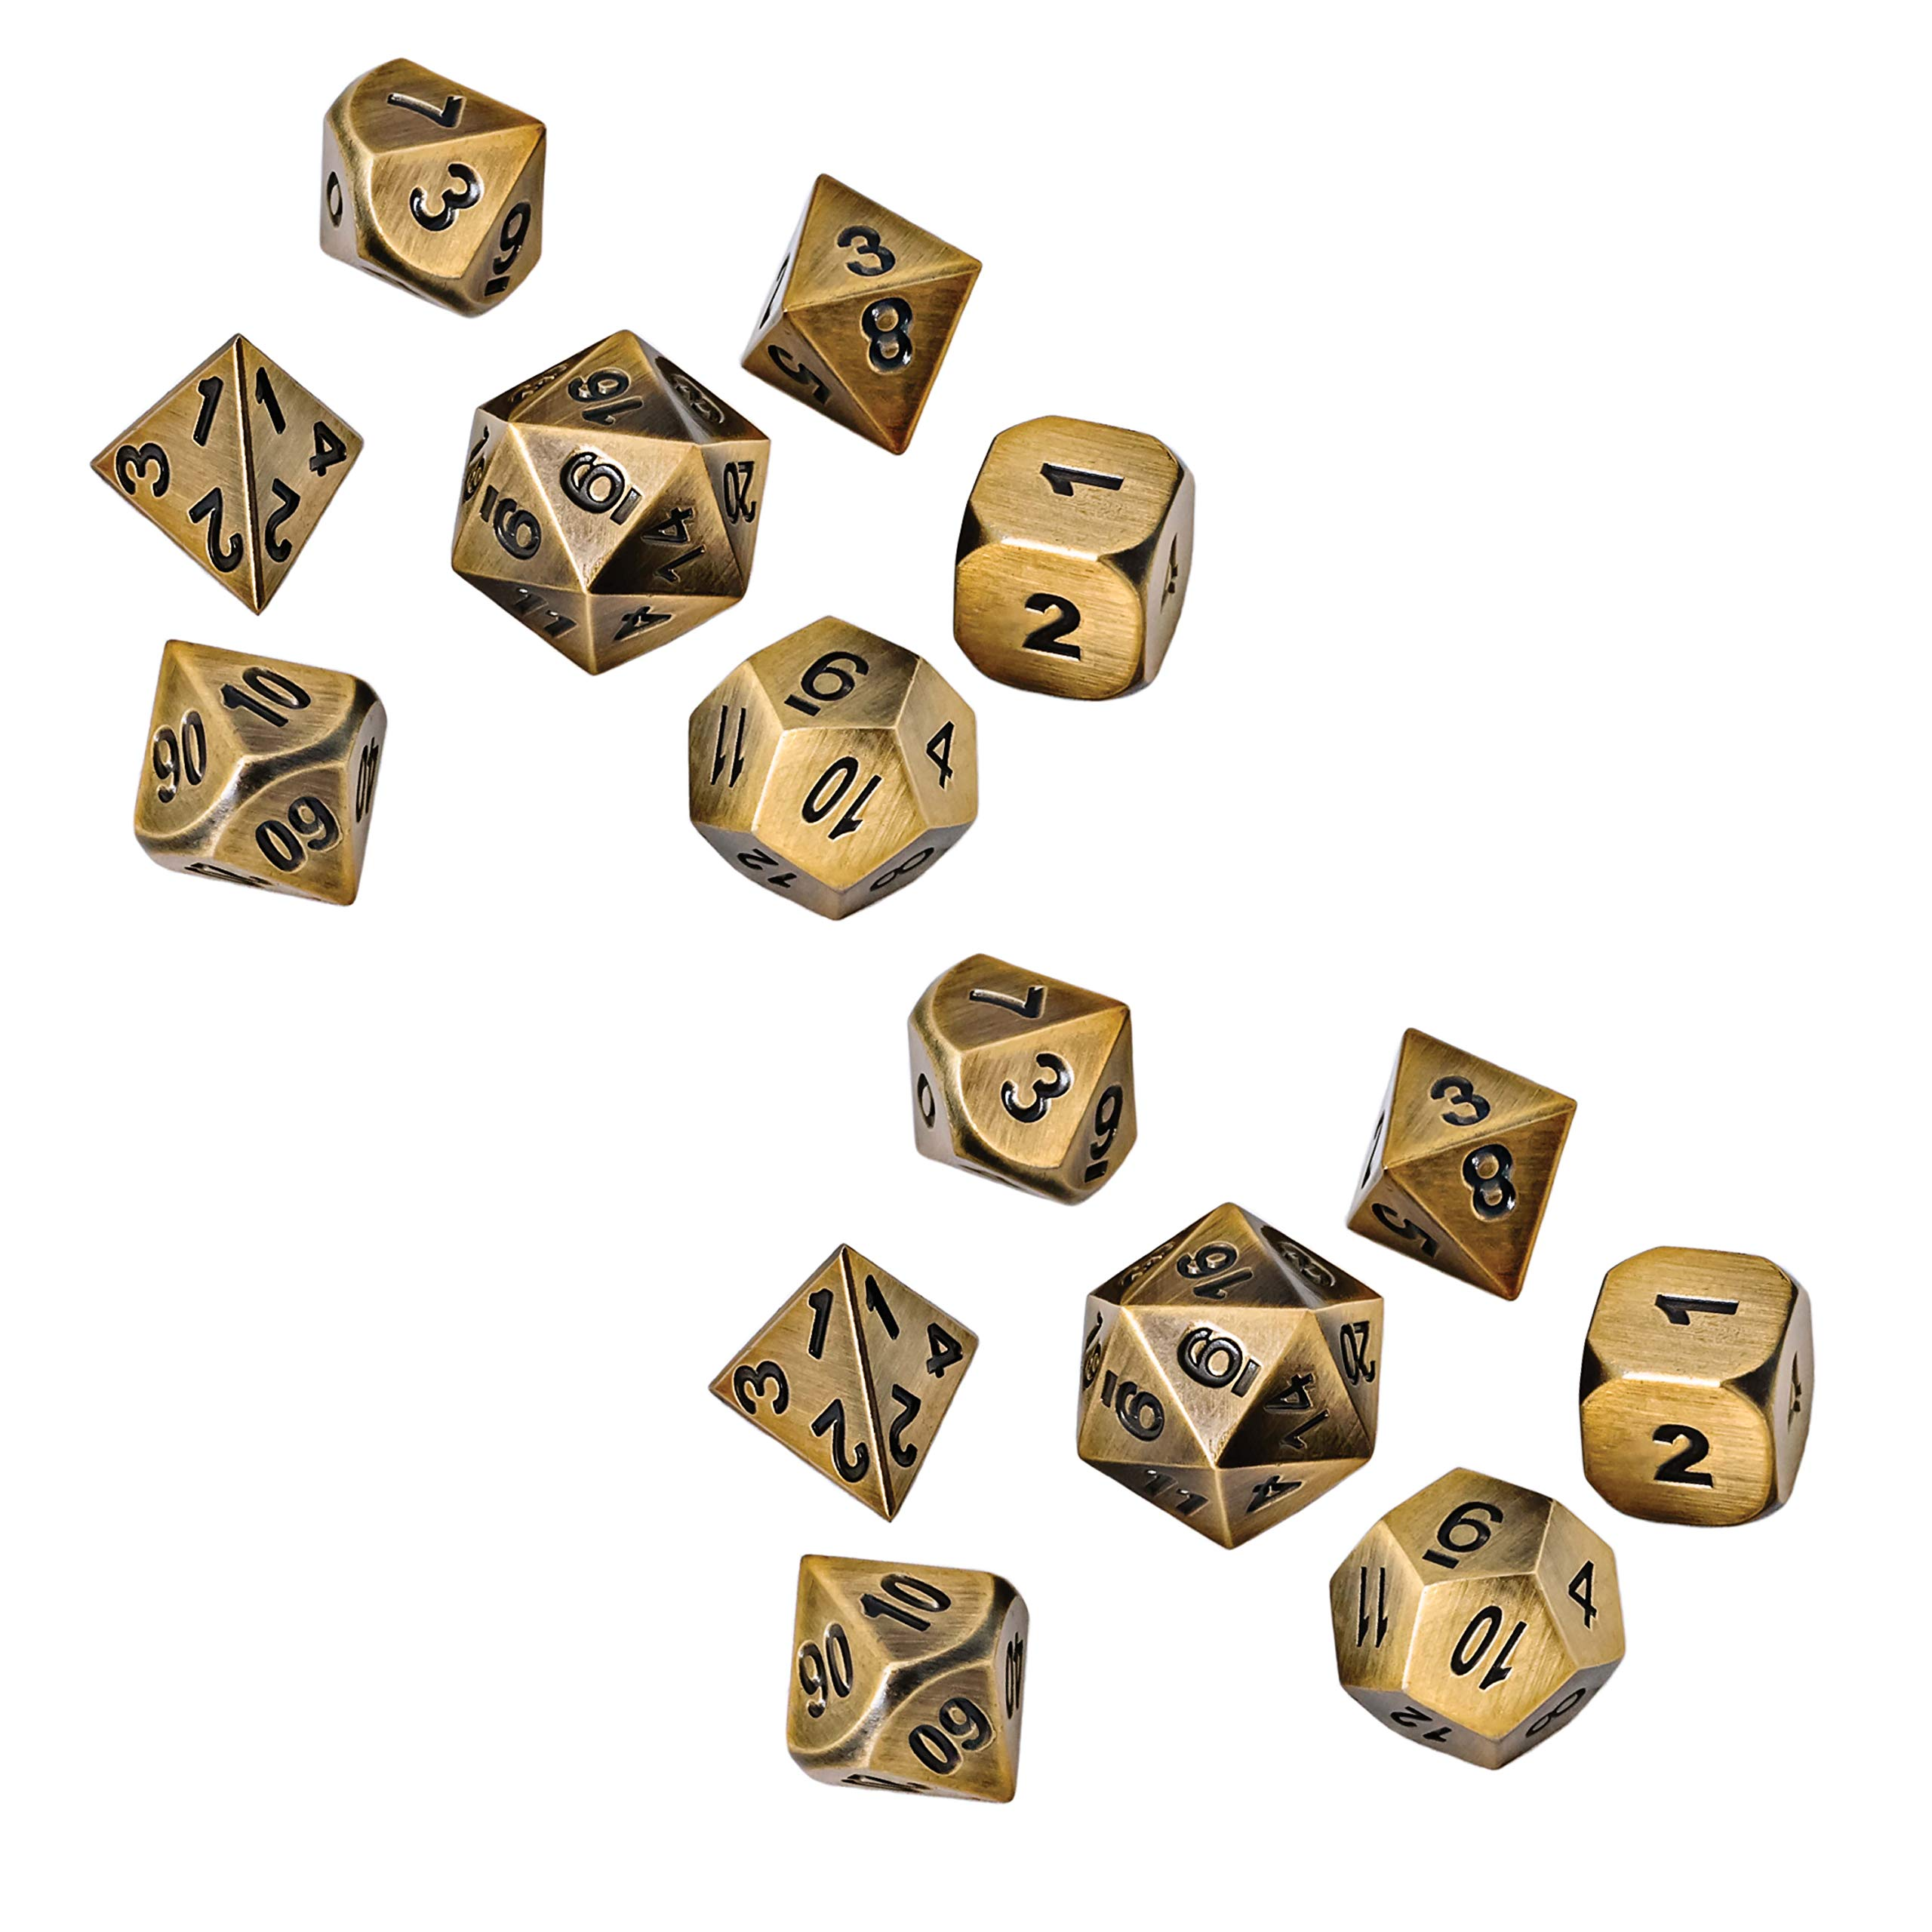 Blacksmith Craft Dice DND Dice Set - Metal Polyhedral Dungeons and Dragons Dice Sets with Dice Bag for RPG Gaming Including D20 (Glimmering Gold, 2 Pack - 14 Polyhedral w/Bag)